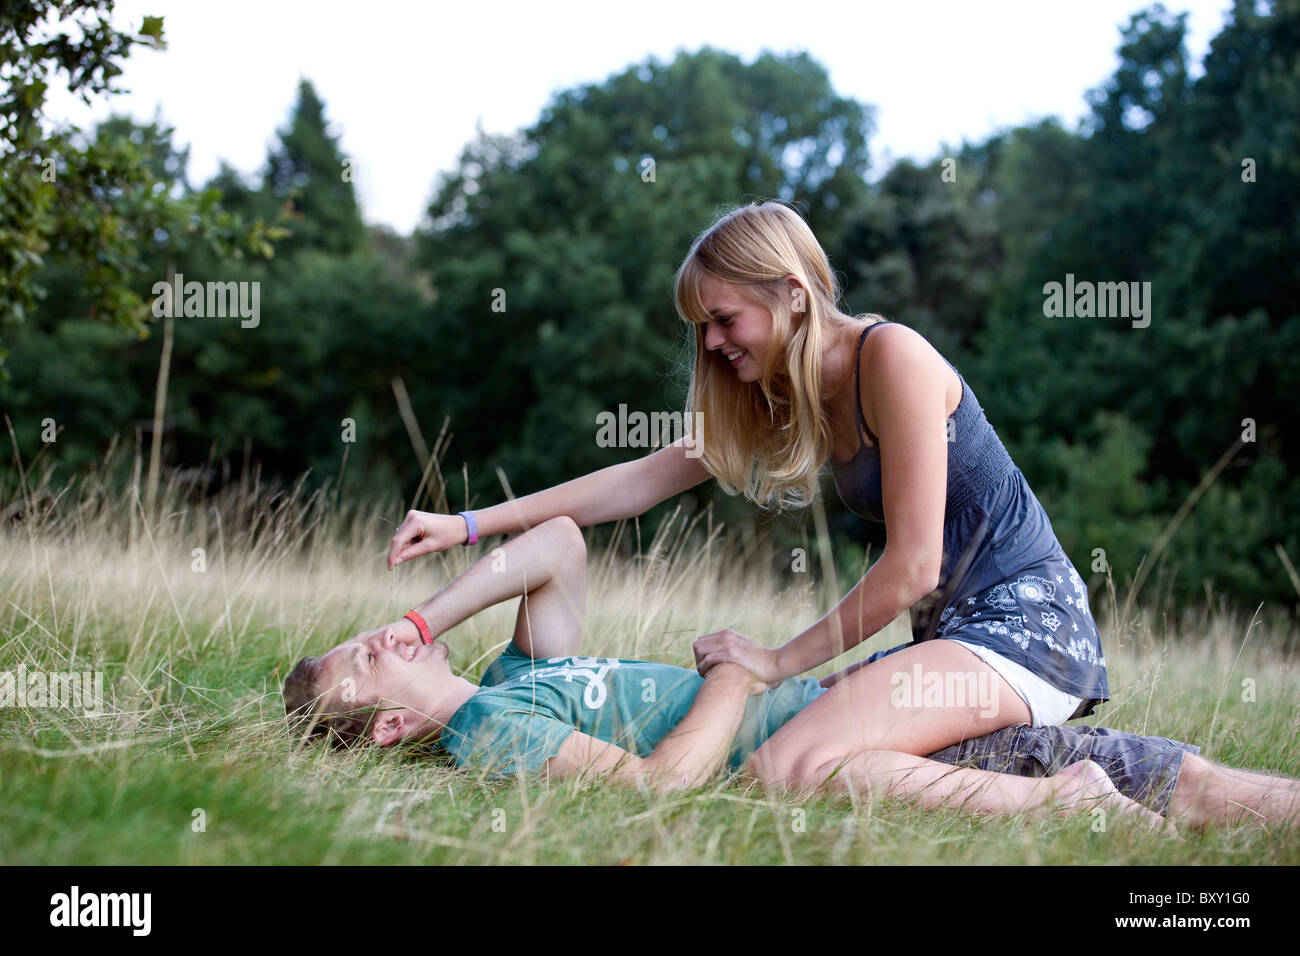 A young couple on the grass, laughing - Stock Image